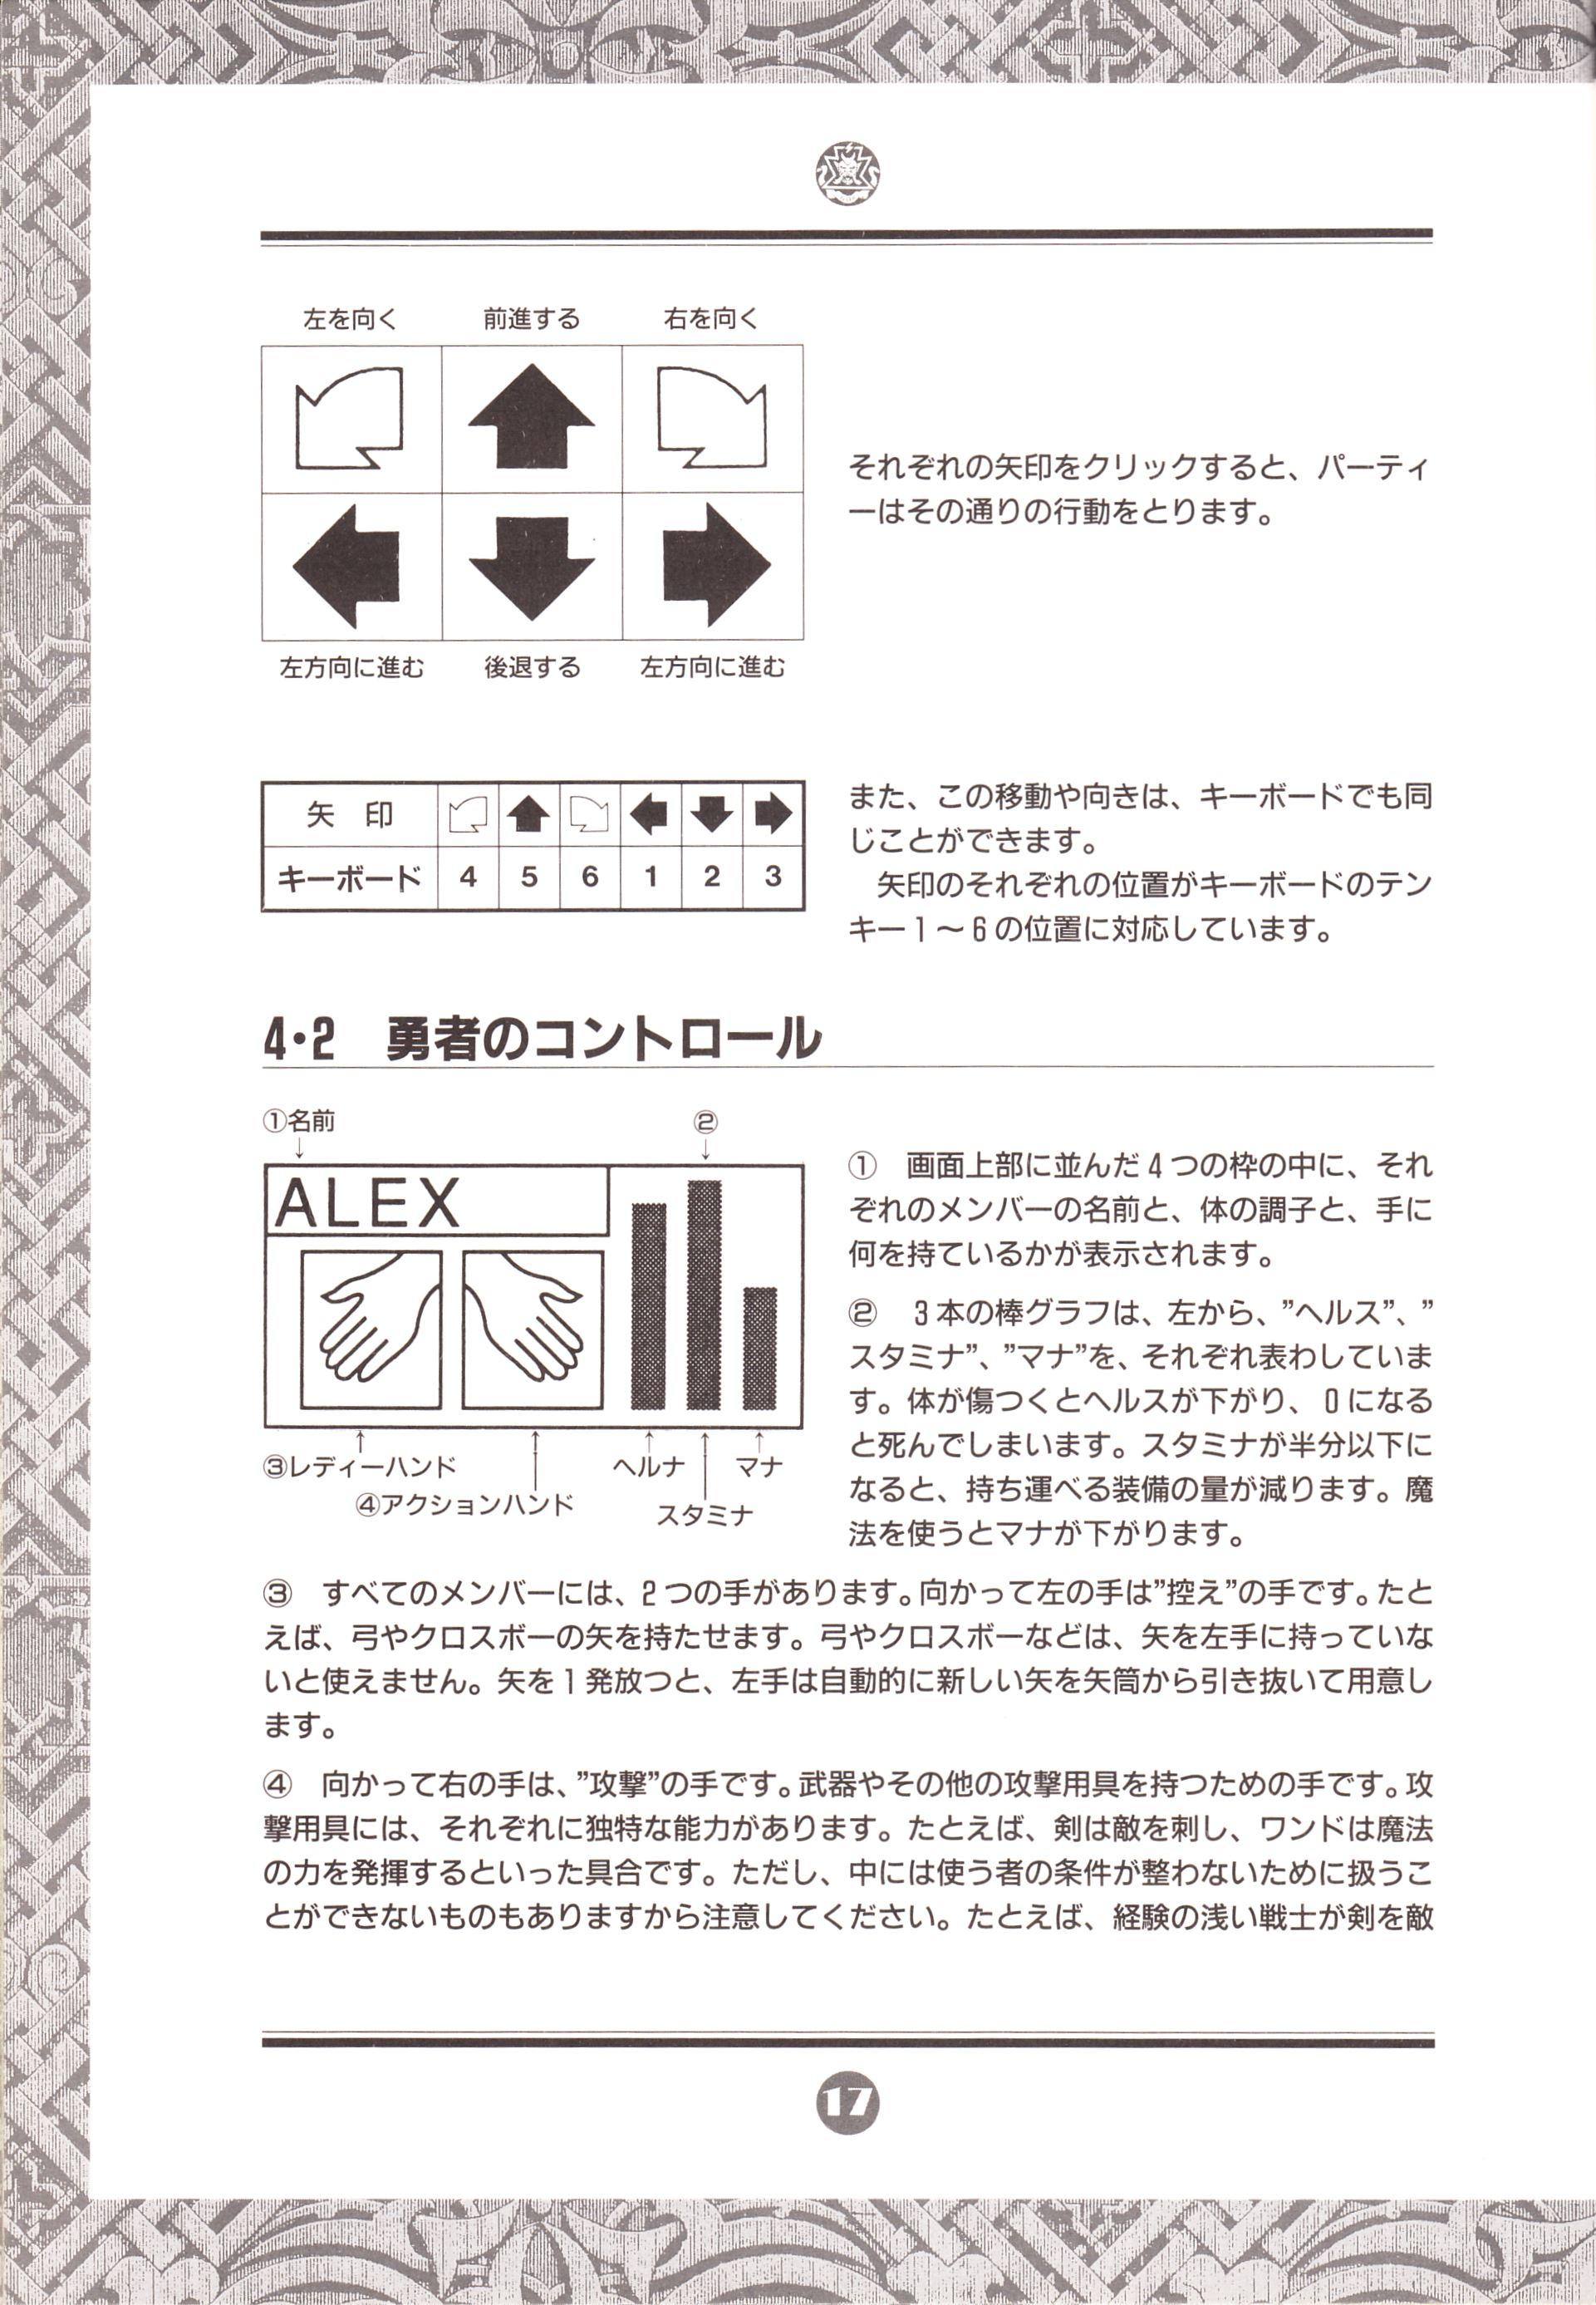 Game - Chaos Strikes Back - JP - PC-9801 - 3-5-inch - An Operation Manual - Page 020 - Scan